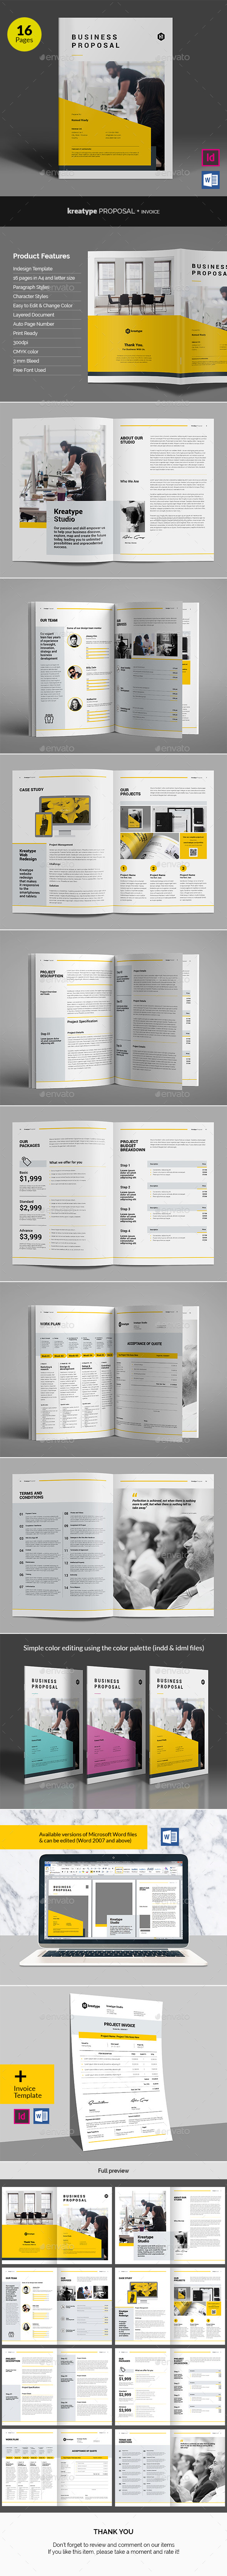 Kreatype Business Proposal v05 - Proposals & Invoices Stationery